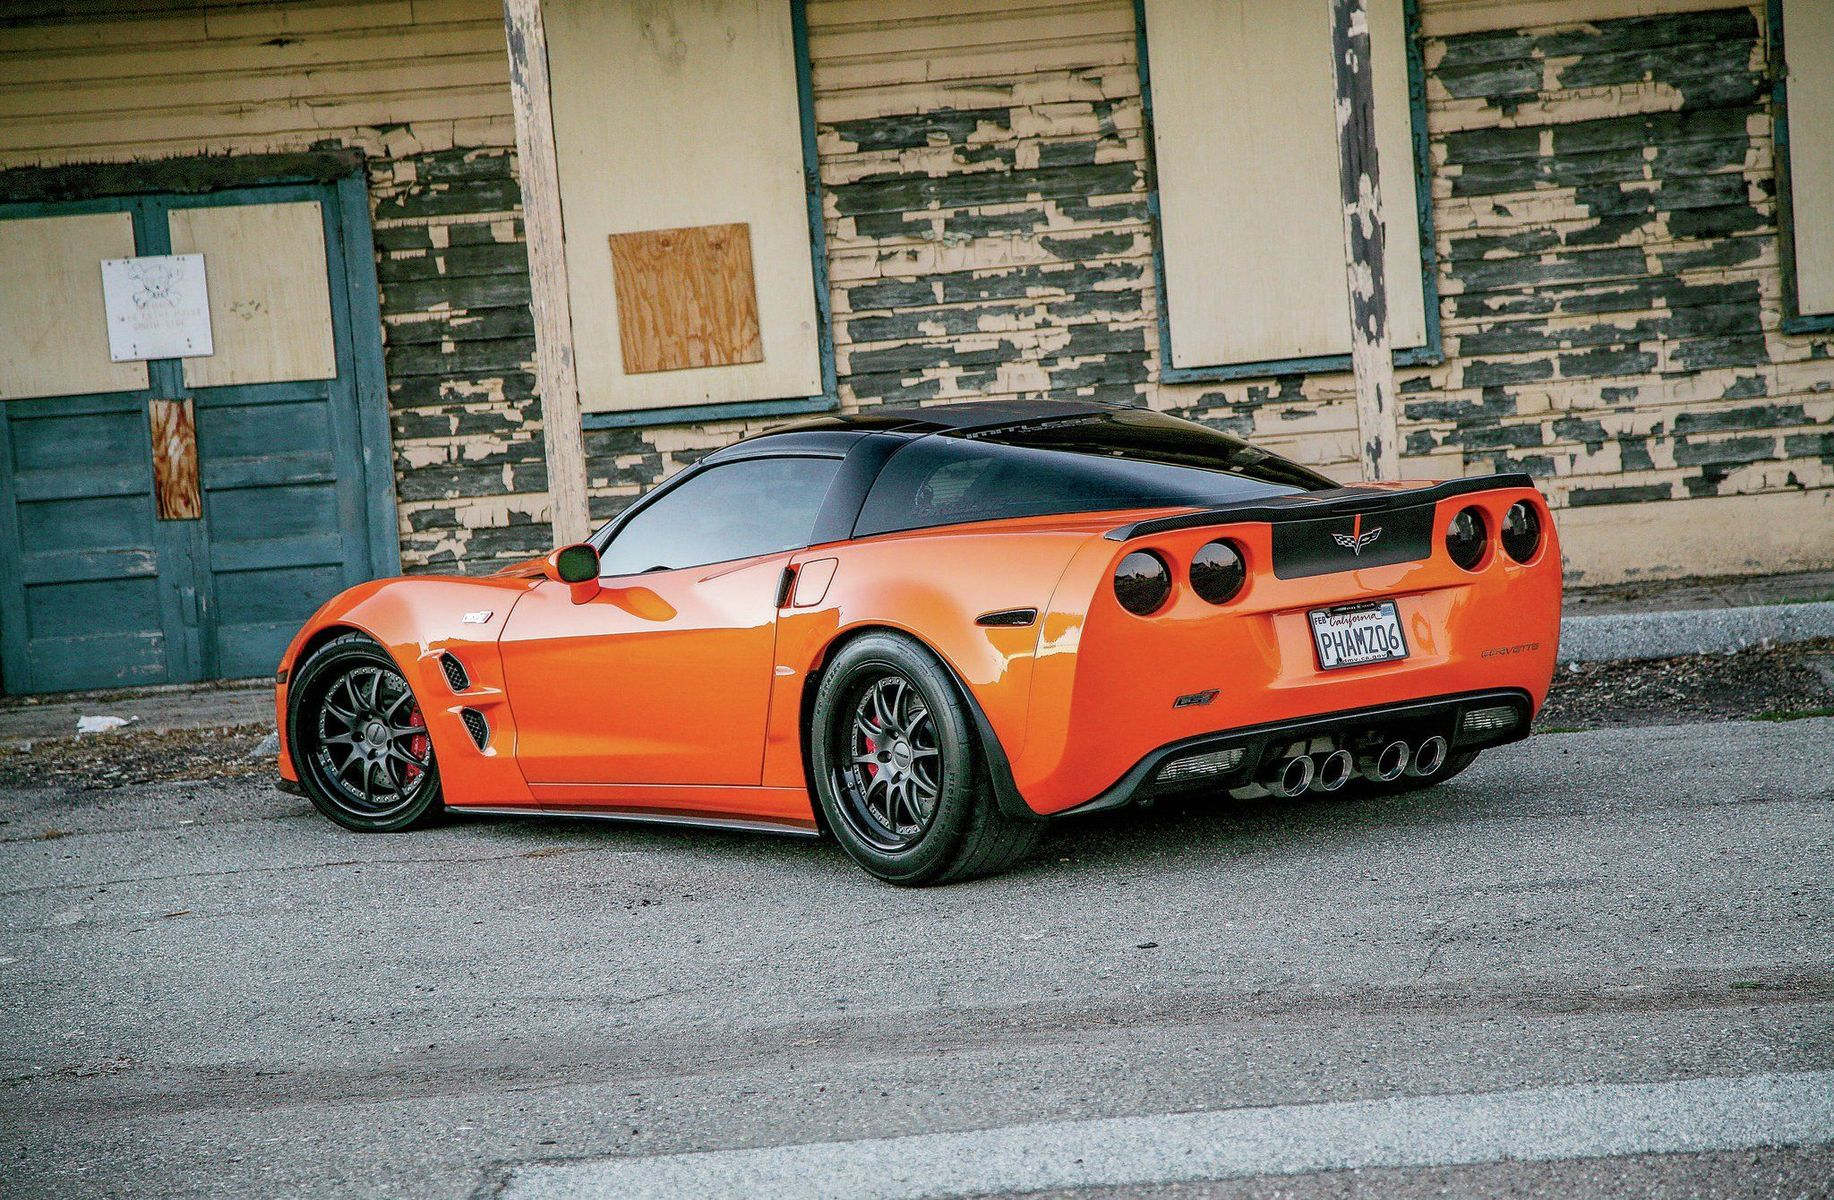 2006 Chevrolet Corvette Z06 | Jimmy Pham's Supercharged C6 Corvette Z06 on Forgeline GZ3 Wheels